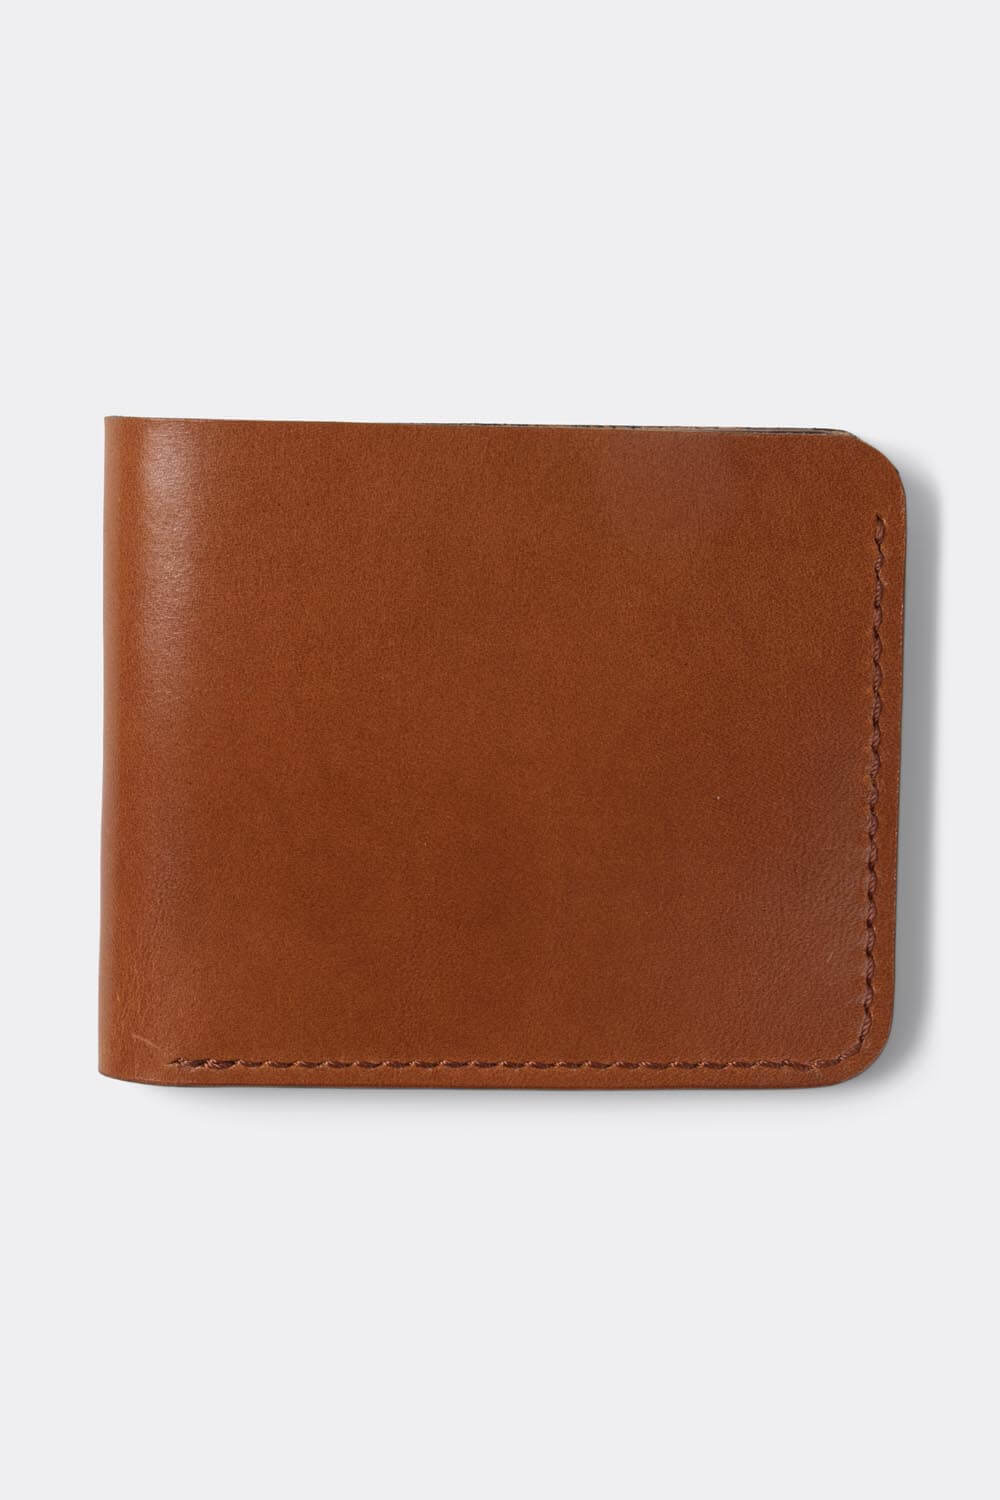 Wallet, bifold , vegetan Cognac leather - Duke & Sons Leather